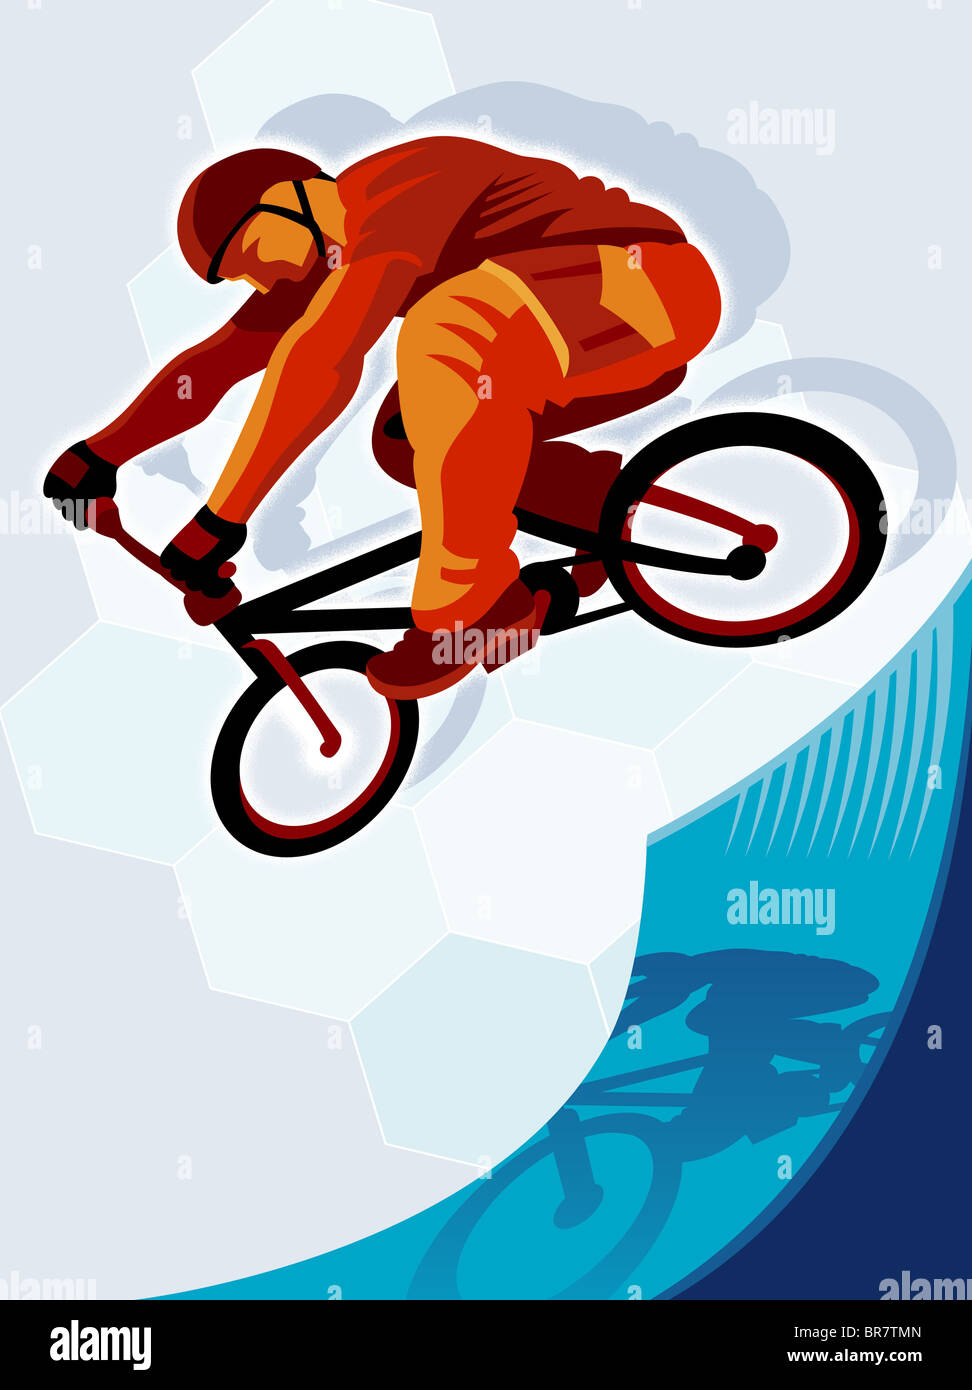 A man executing bike stunt on the vert - Stock Image